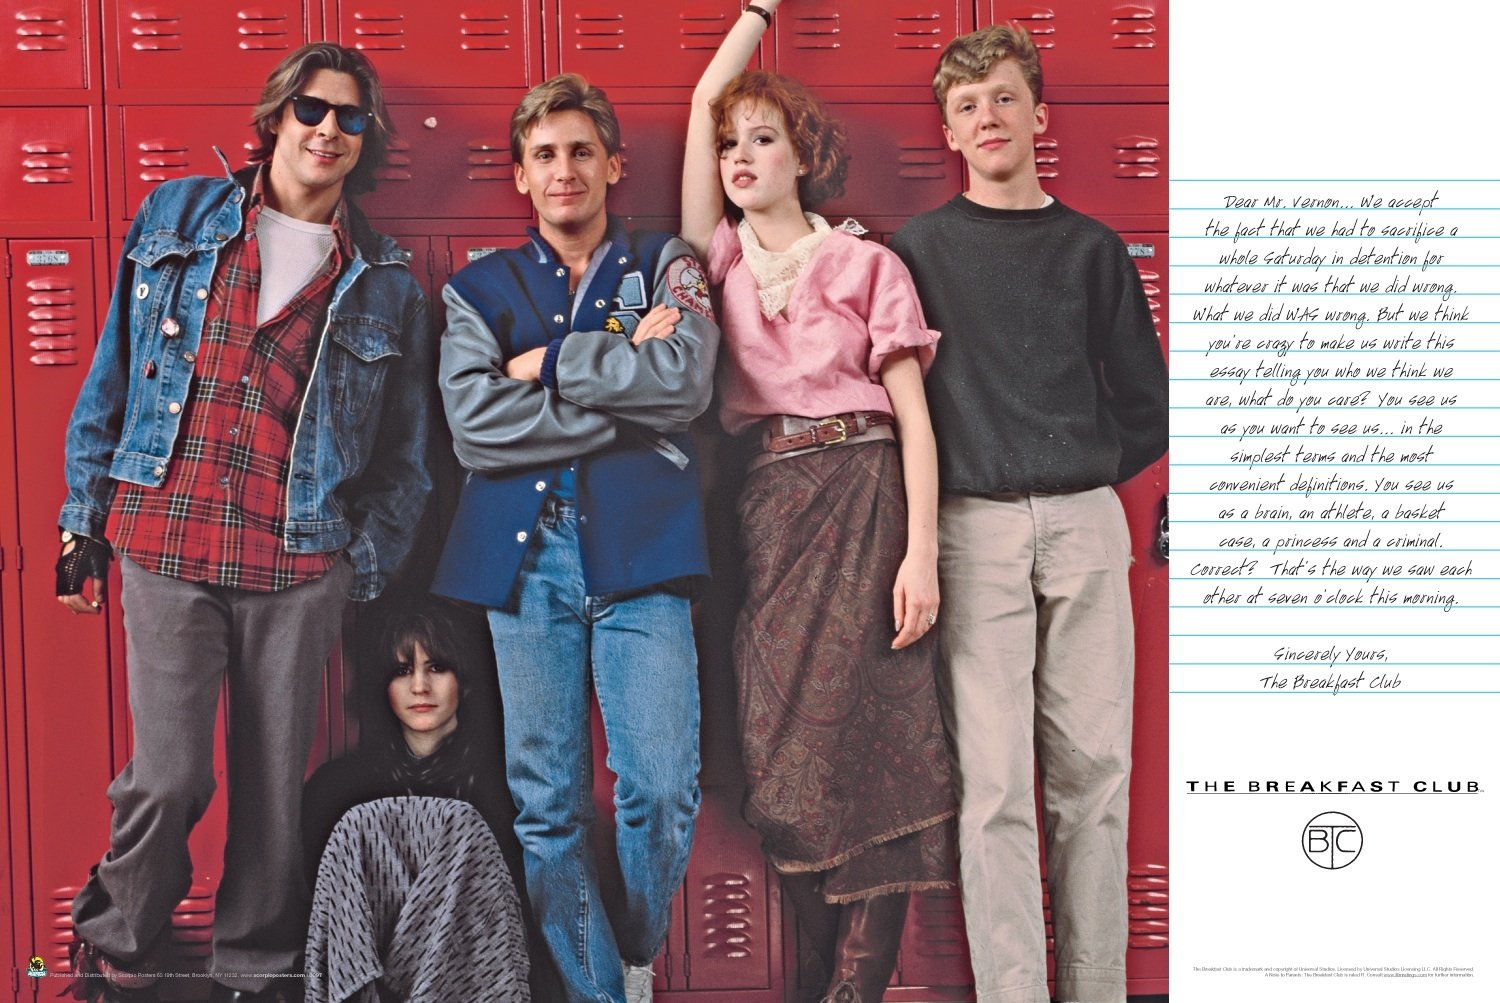 com scorpio the breakfast club lockers poster print  com scorpio the breakfast club lockers poster print posters prints